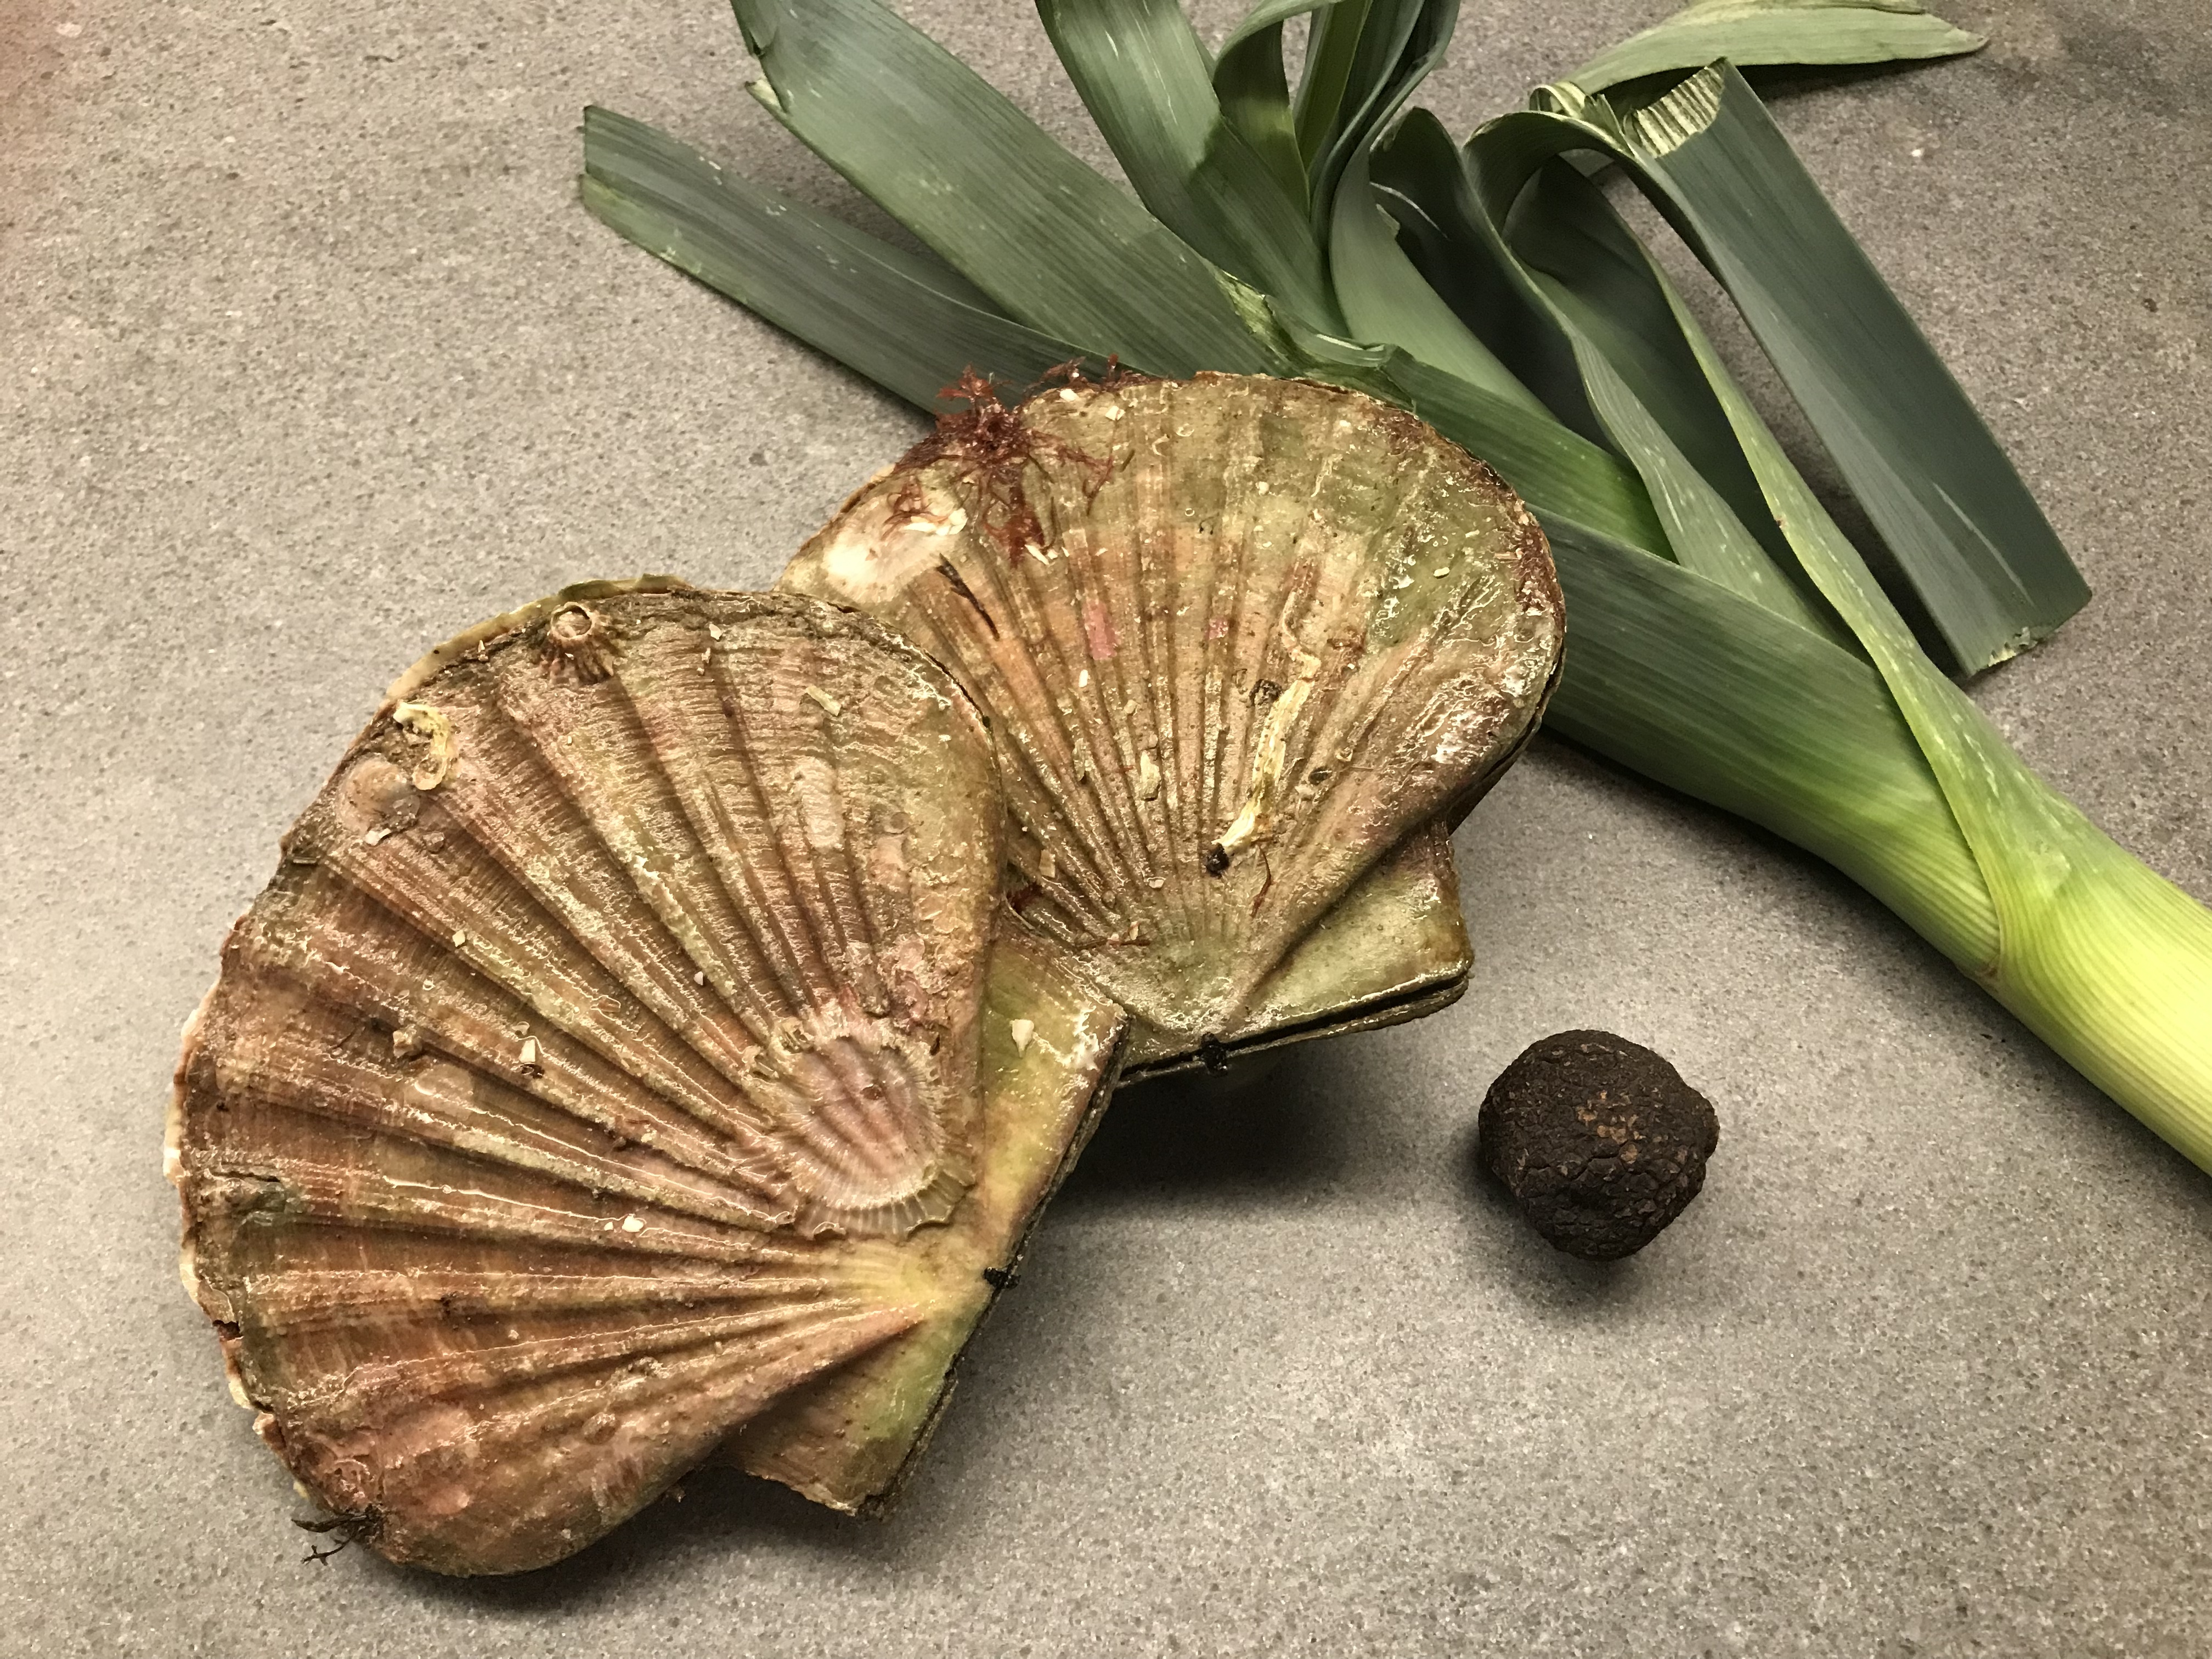 Ingredients of Scallops or Coqcuilles Saint Jacques with Winter Truffle © cadwu